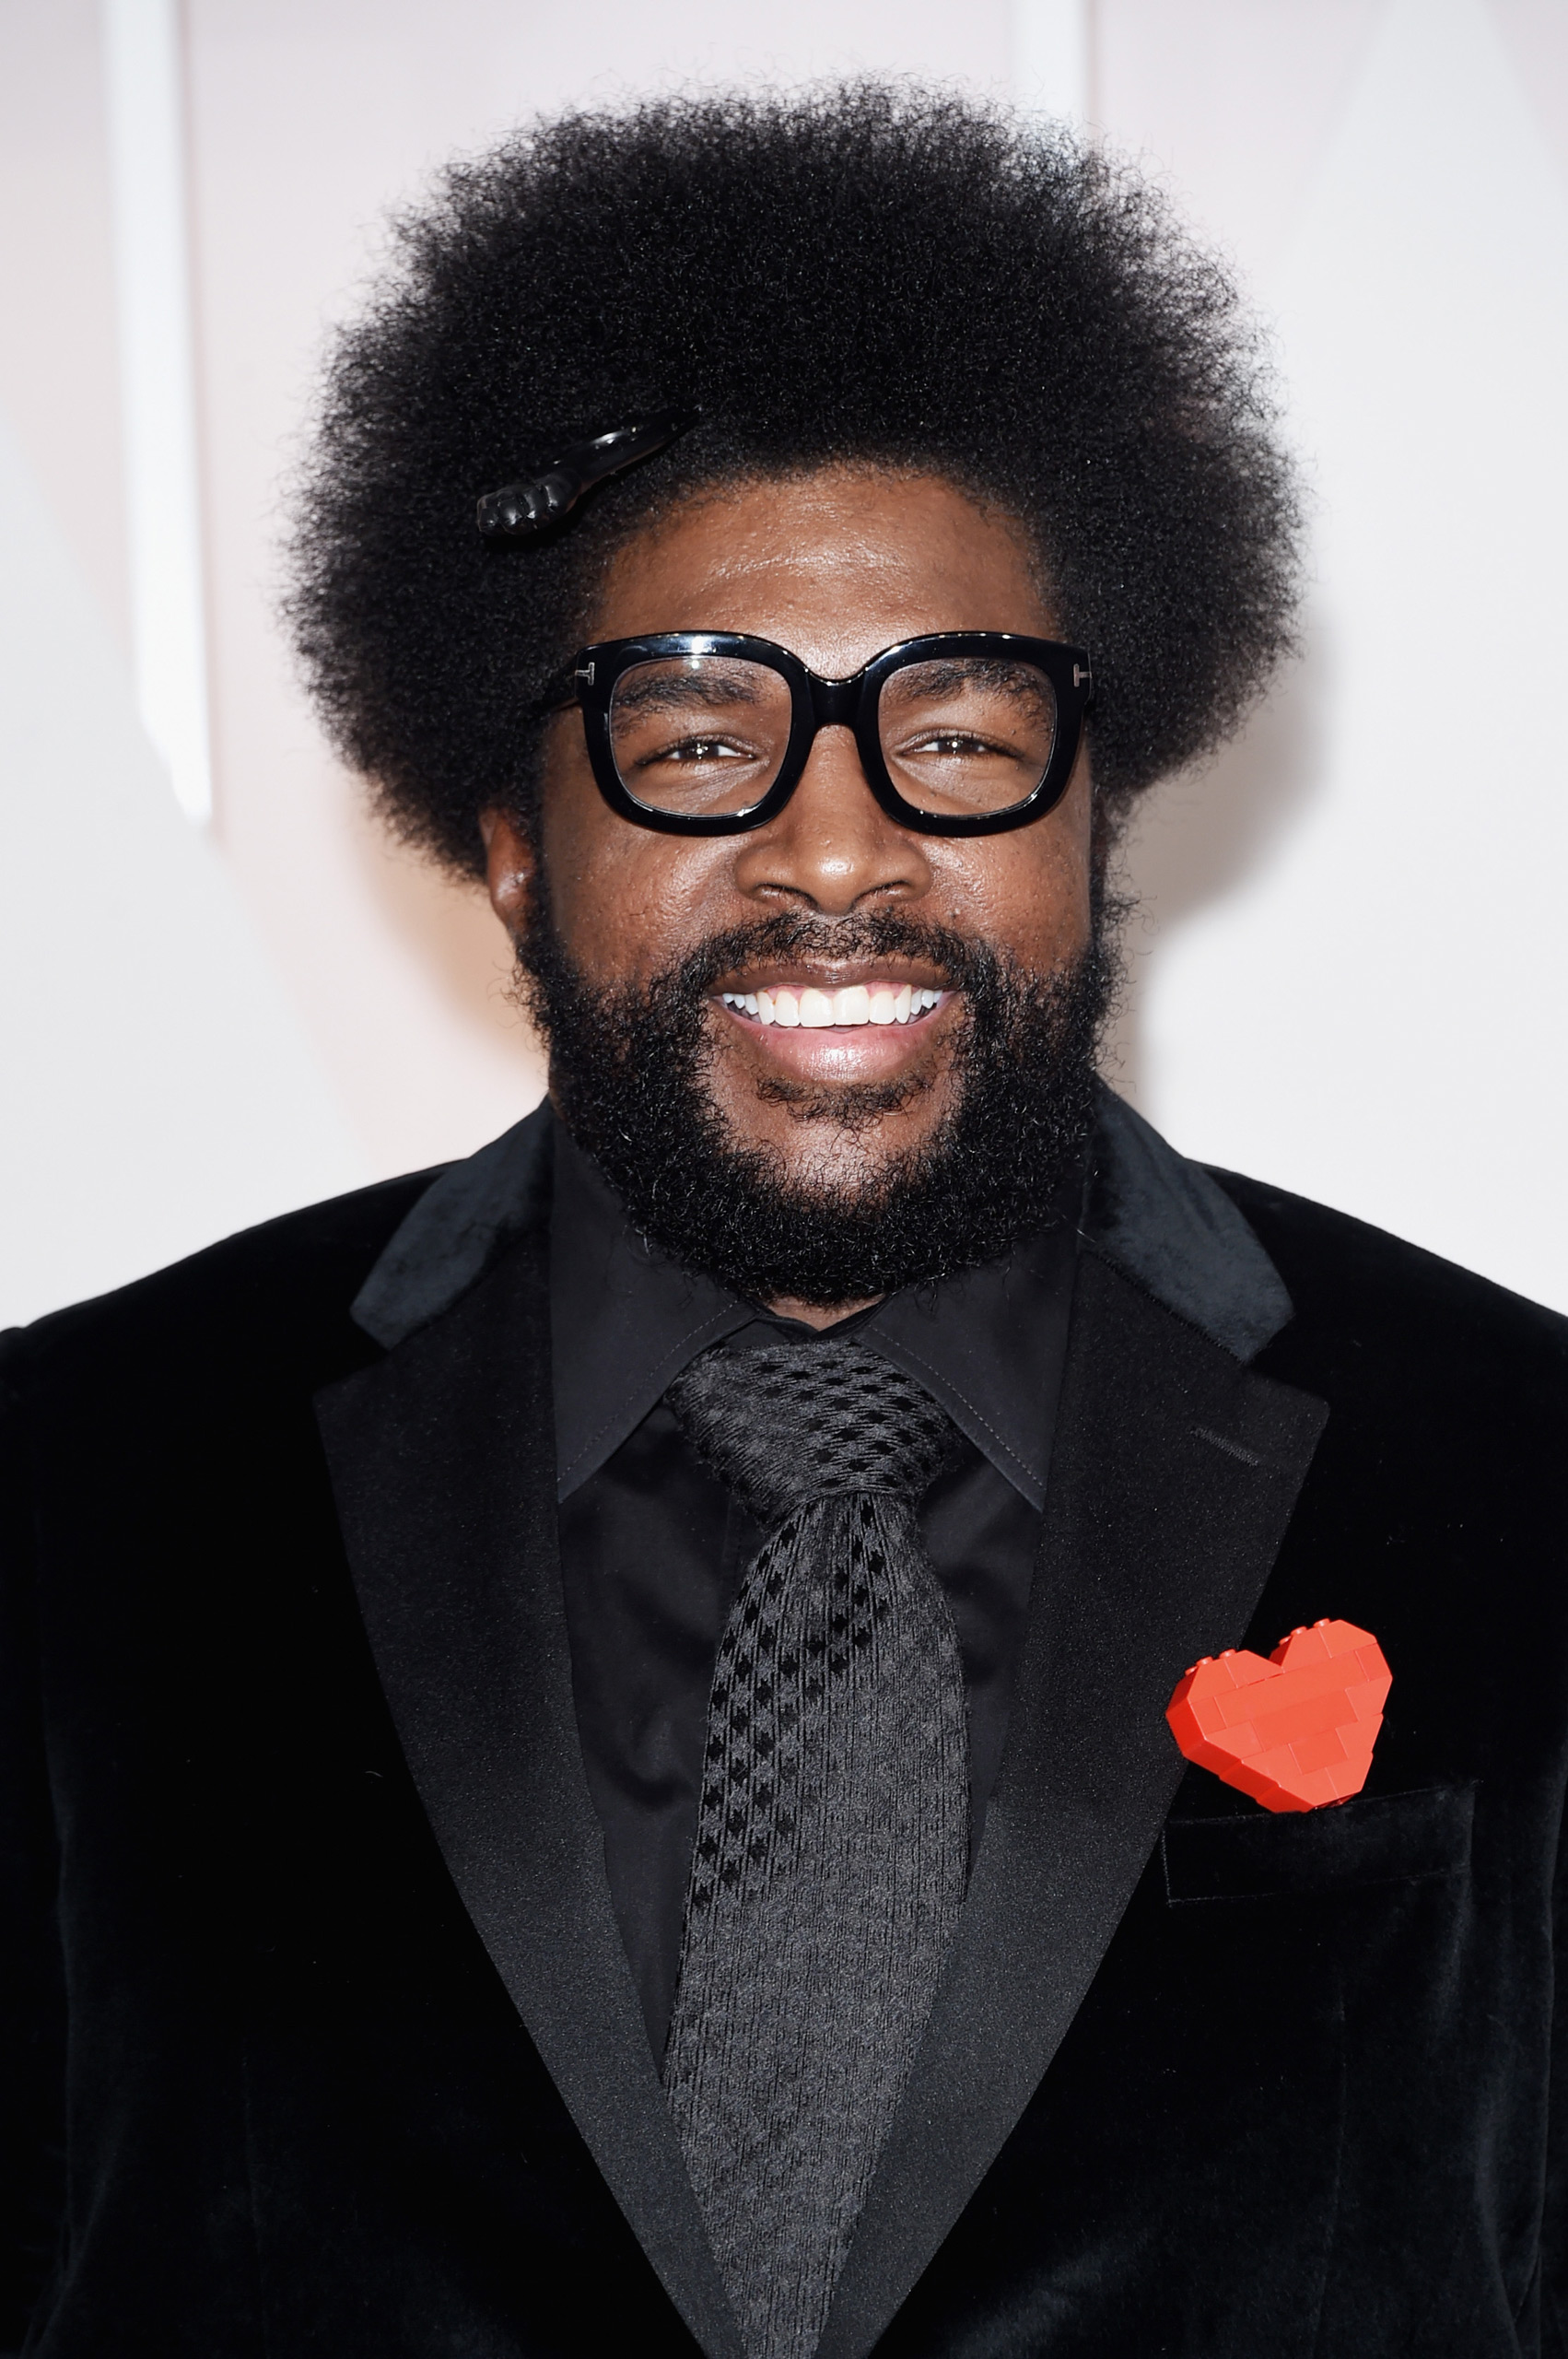 Questlove attends the 87th Annual Academy Awards on Feb. 22, 2015 in Hollywood, Calif.